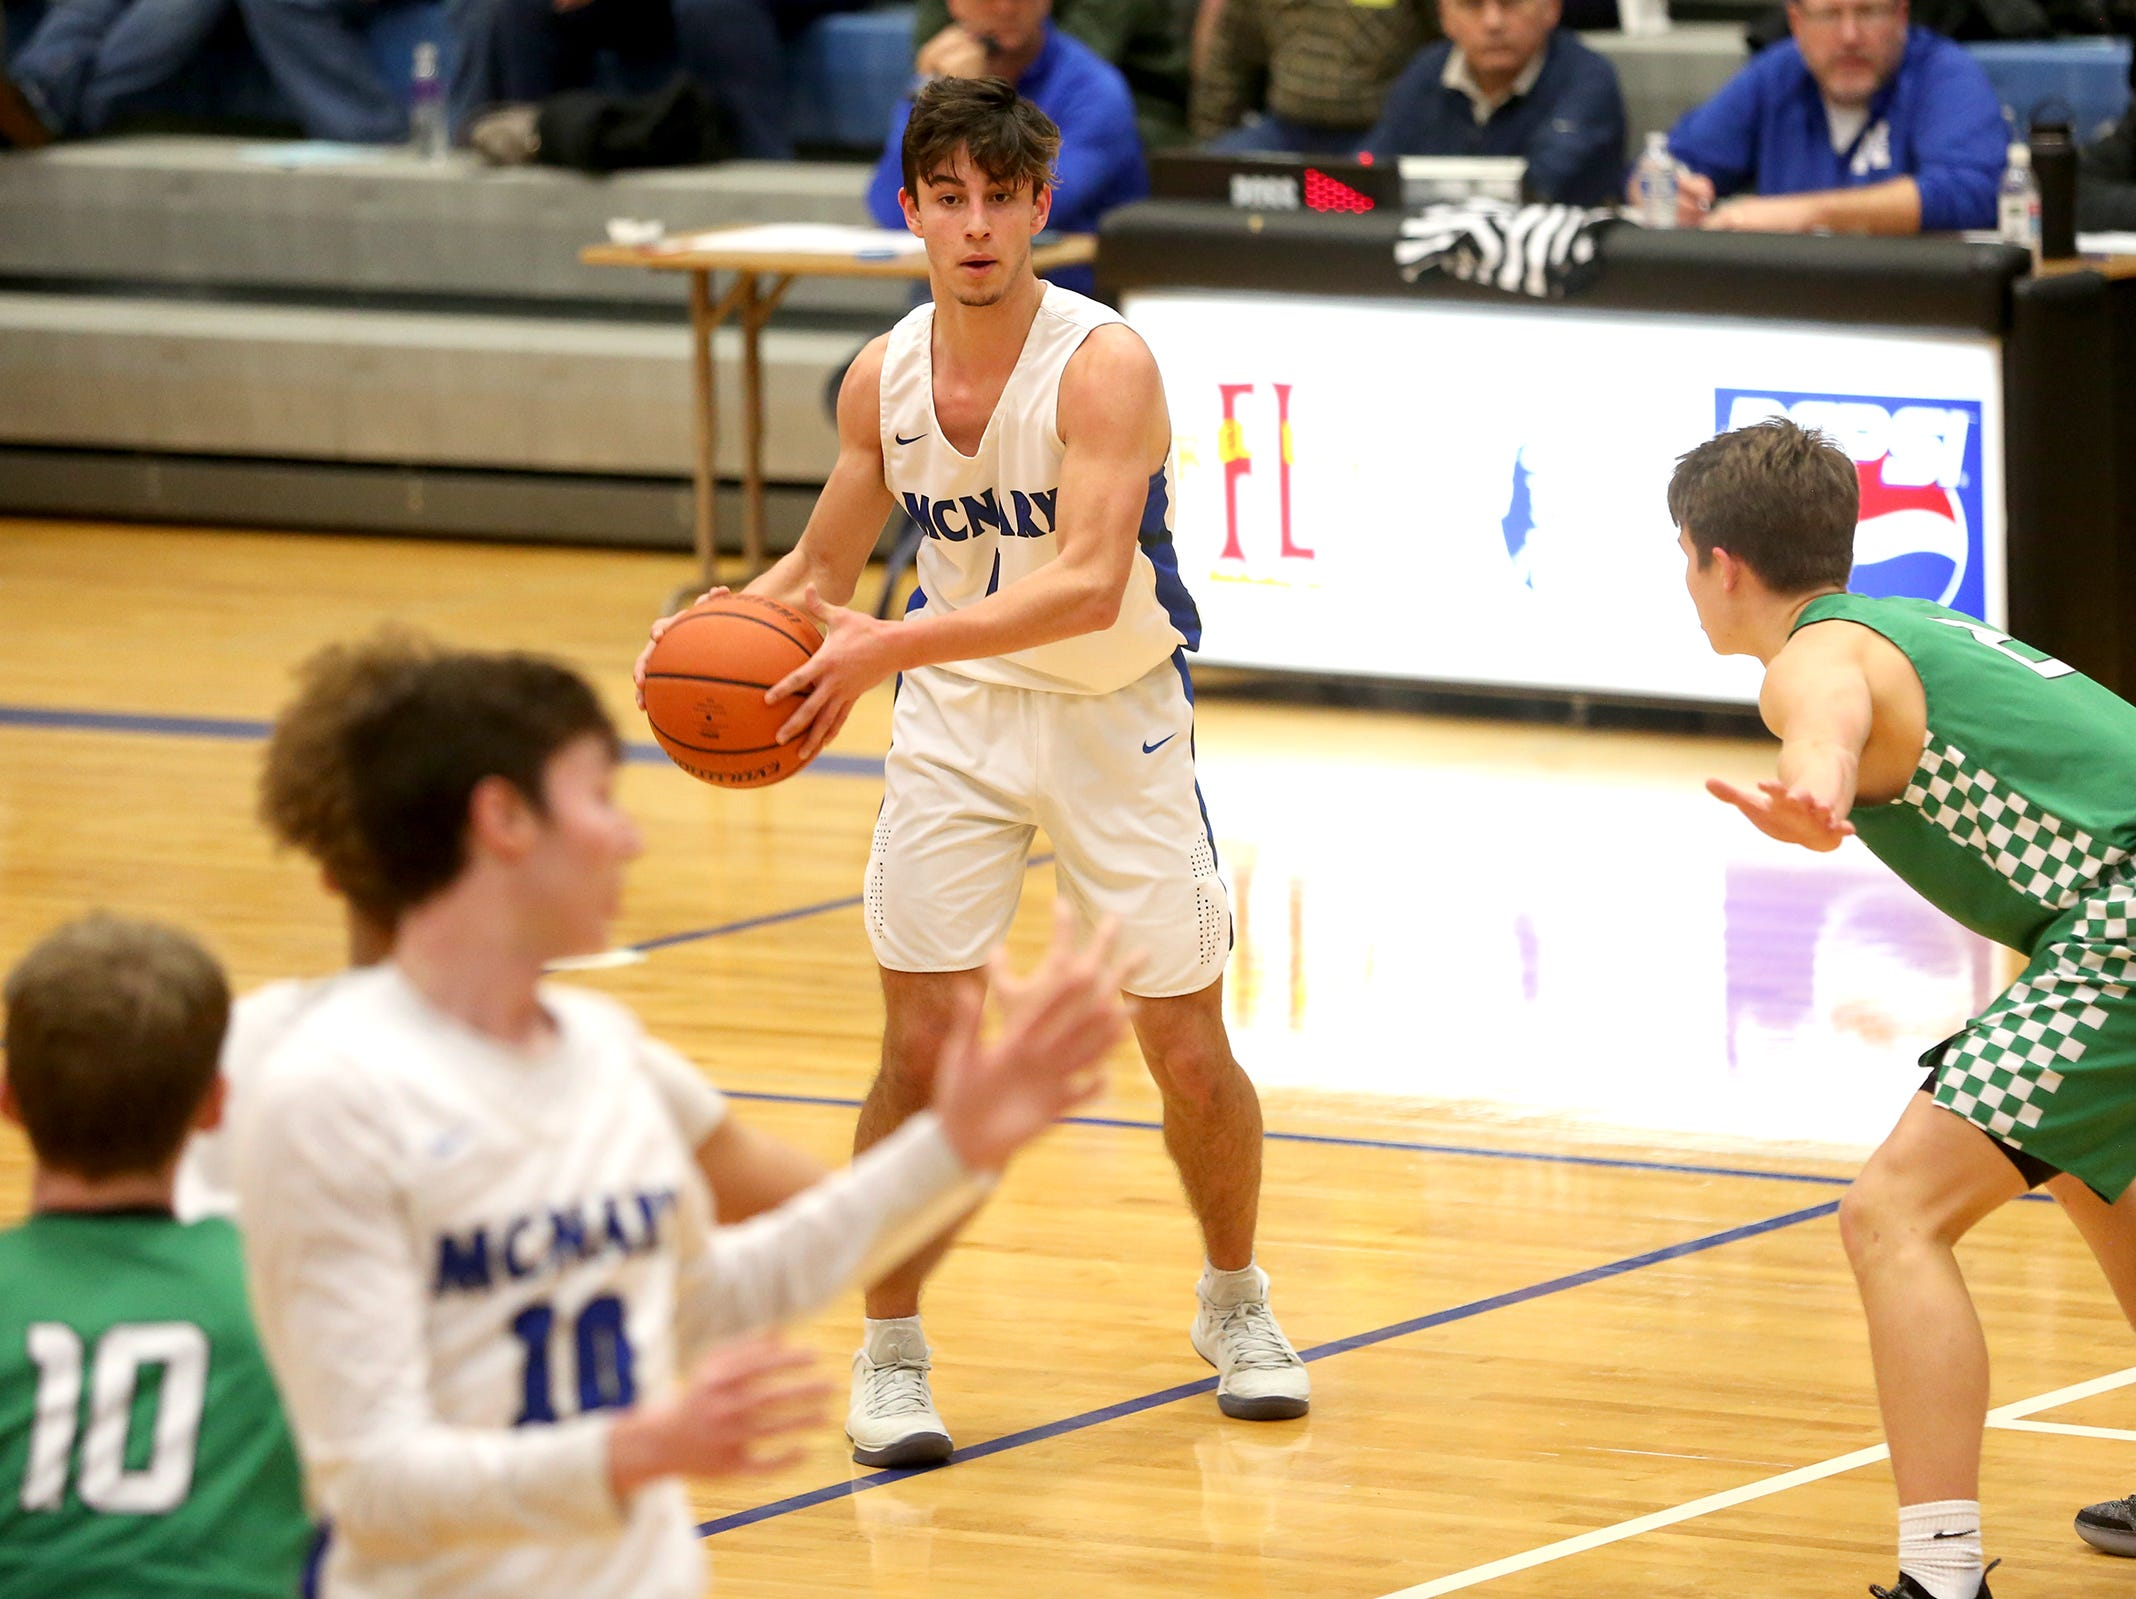 McNary's Devyn Schurr (4) looks to make a pass during the McNary boys basketball vs. West Salem game at McNary High School in Keizer on Wednesday, Feb. 6, 2019.